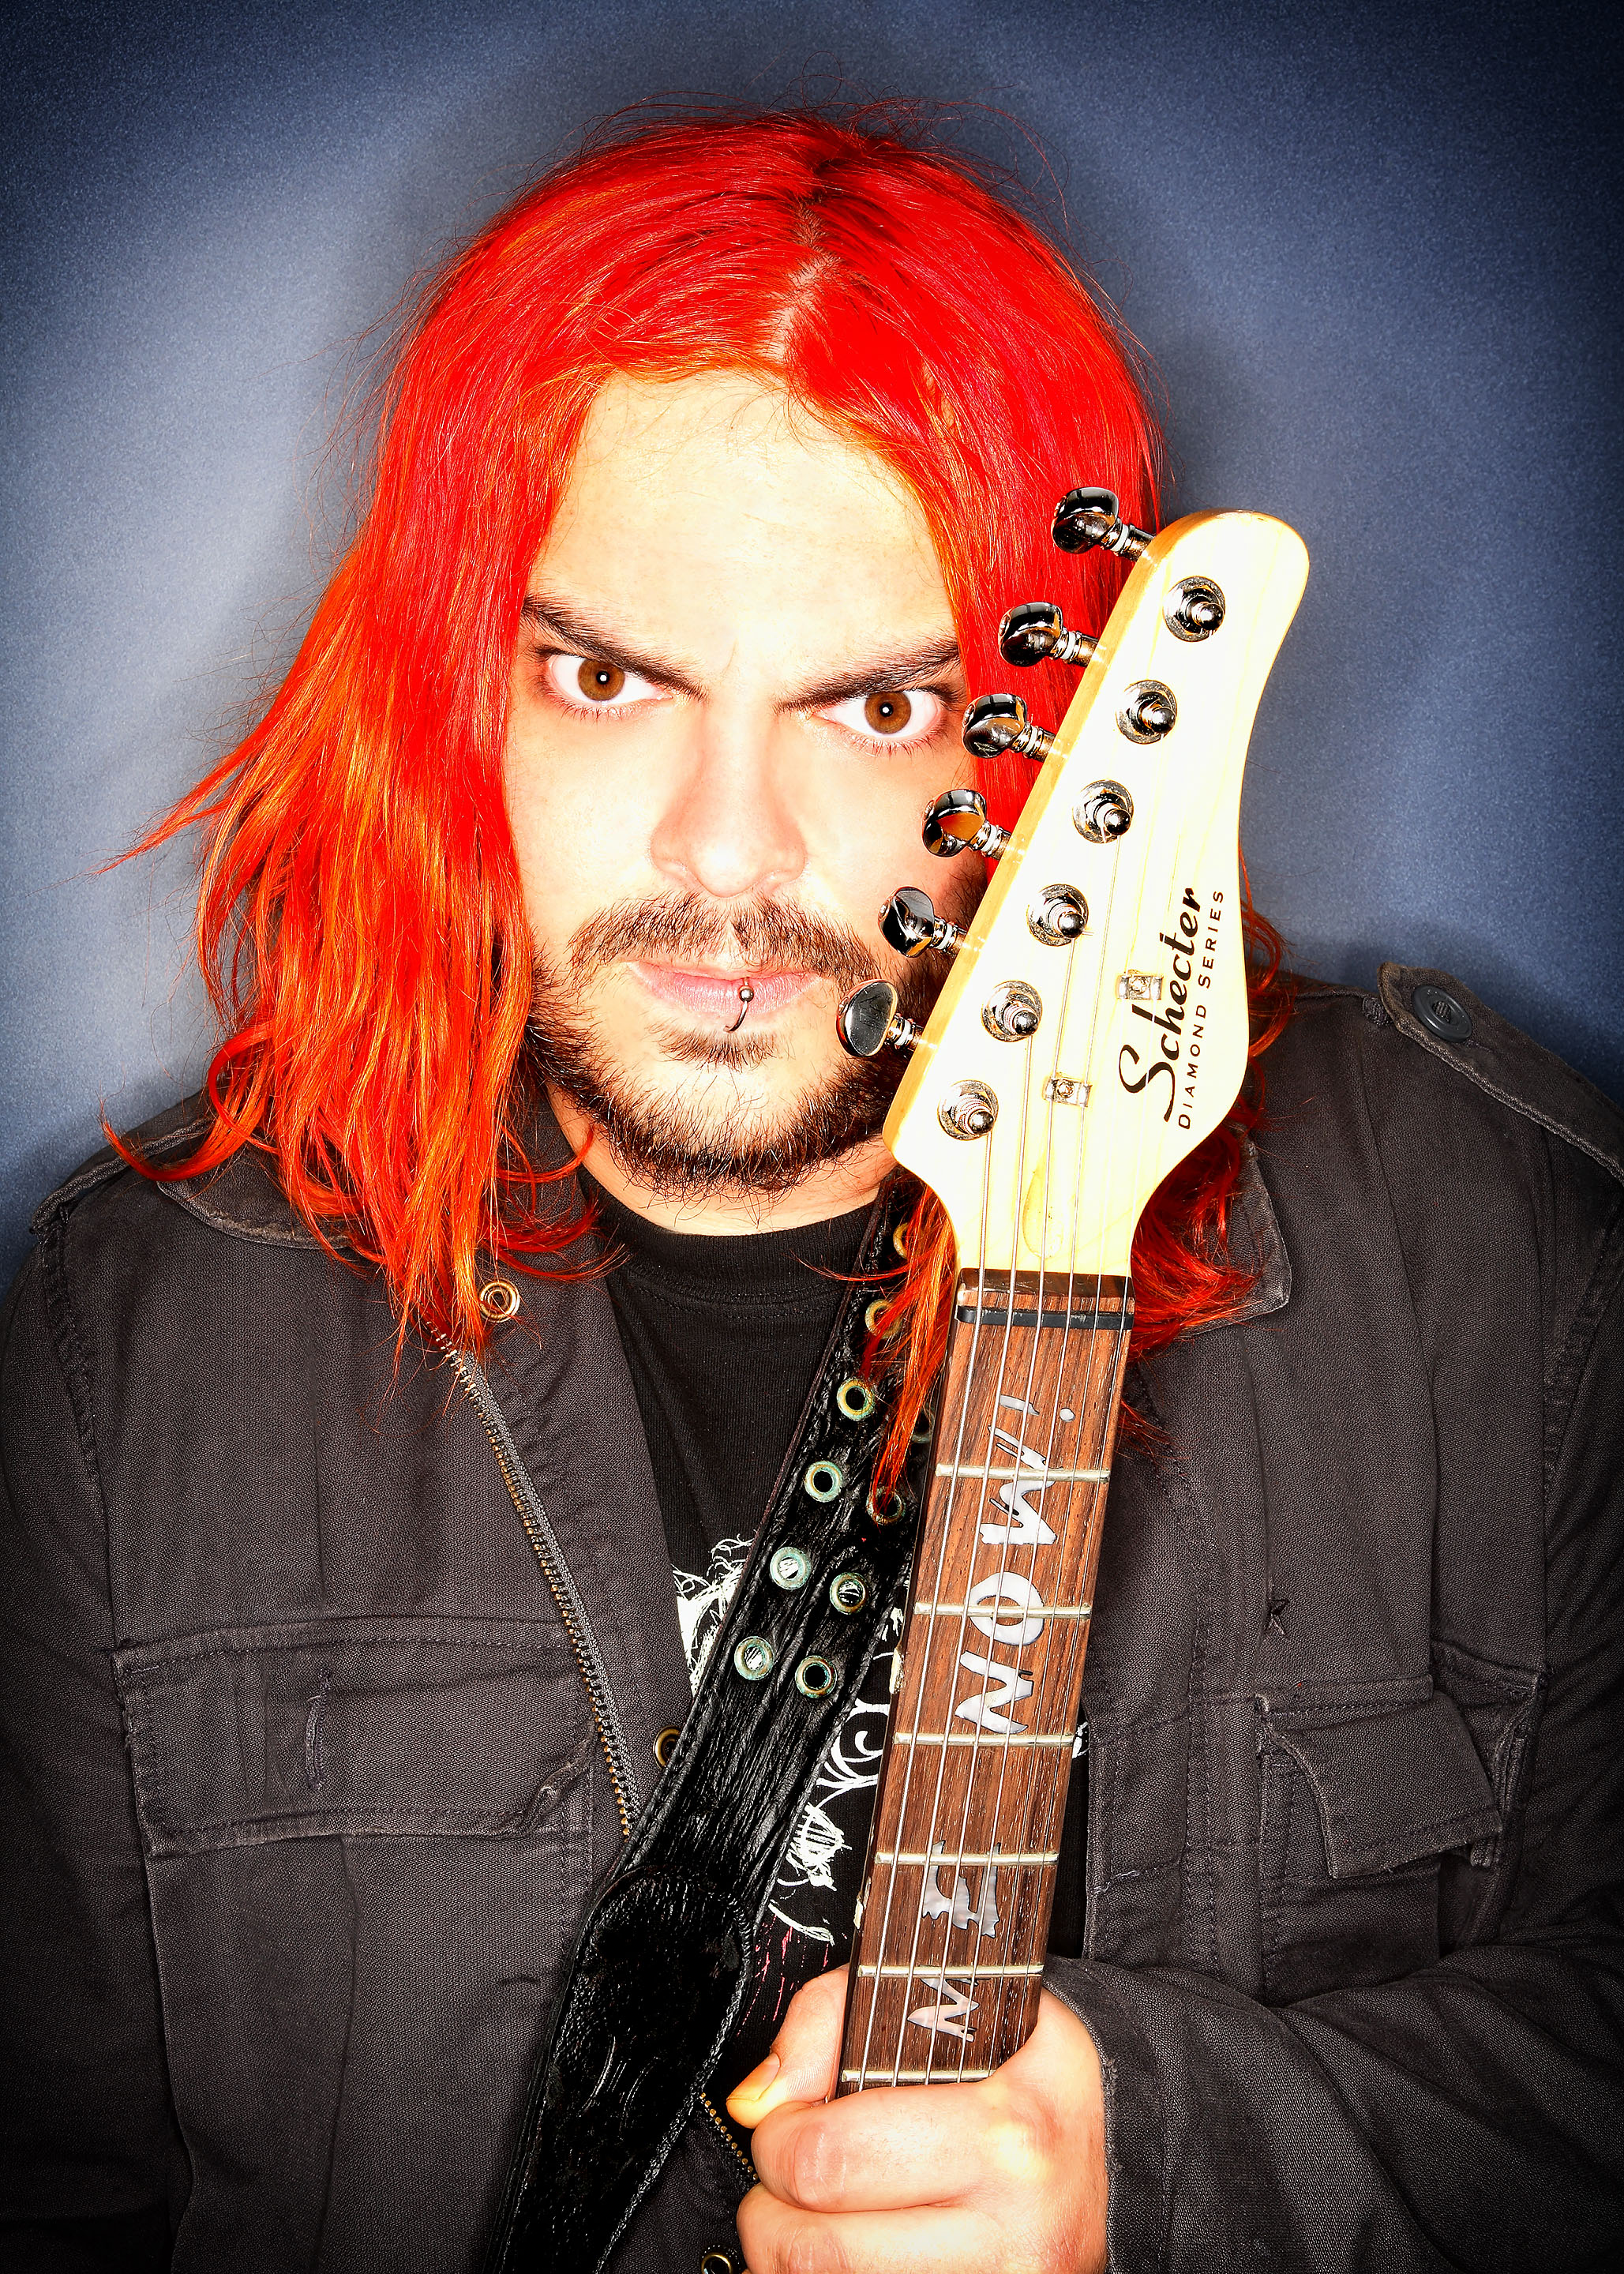 Shaun Morgan Red Hair 0183 © Ash Newell Photography